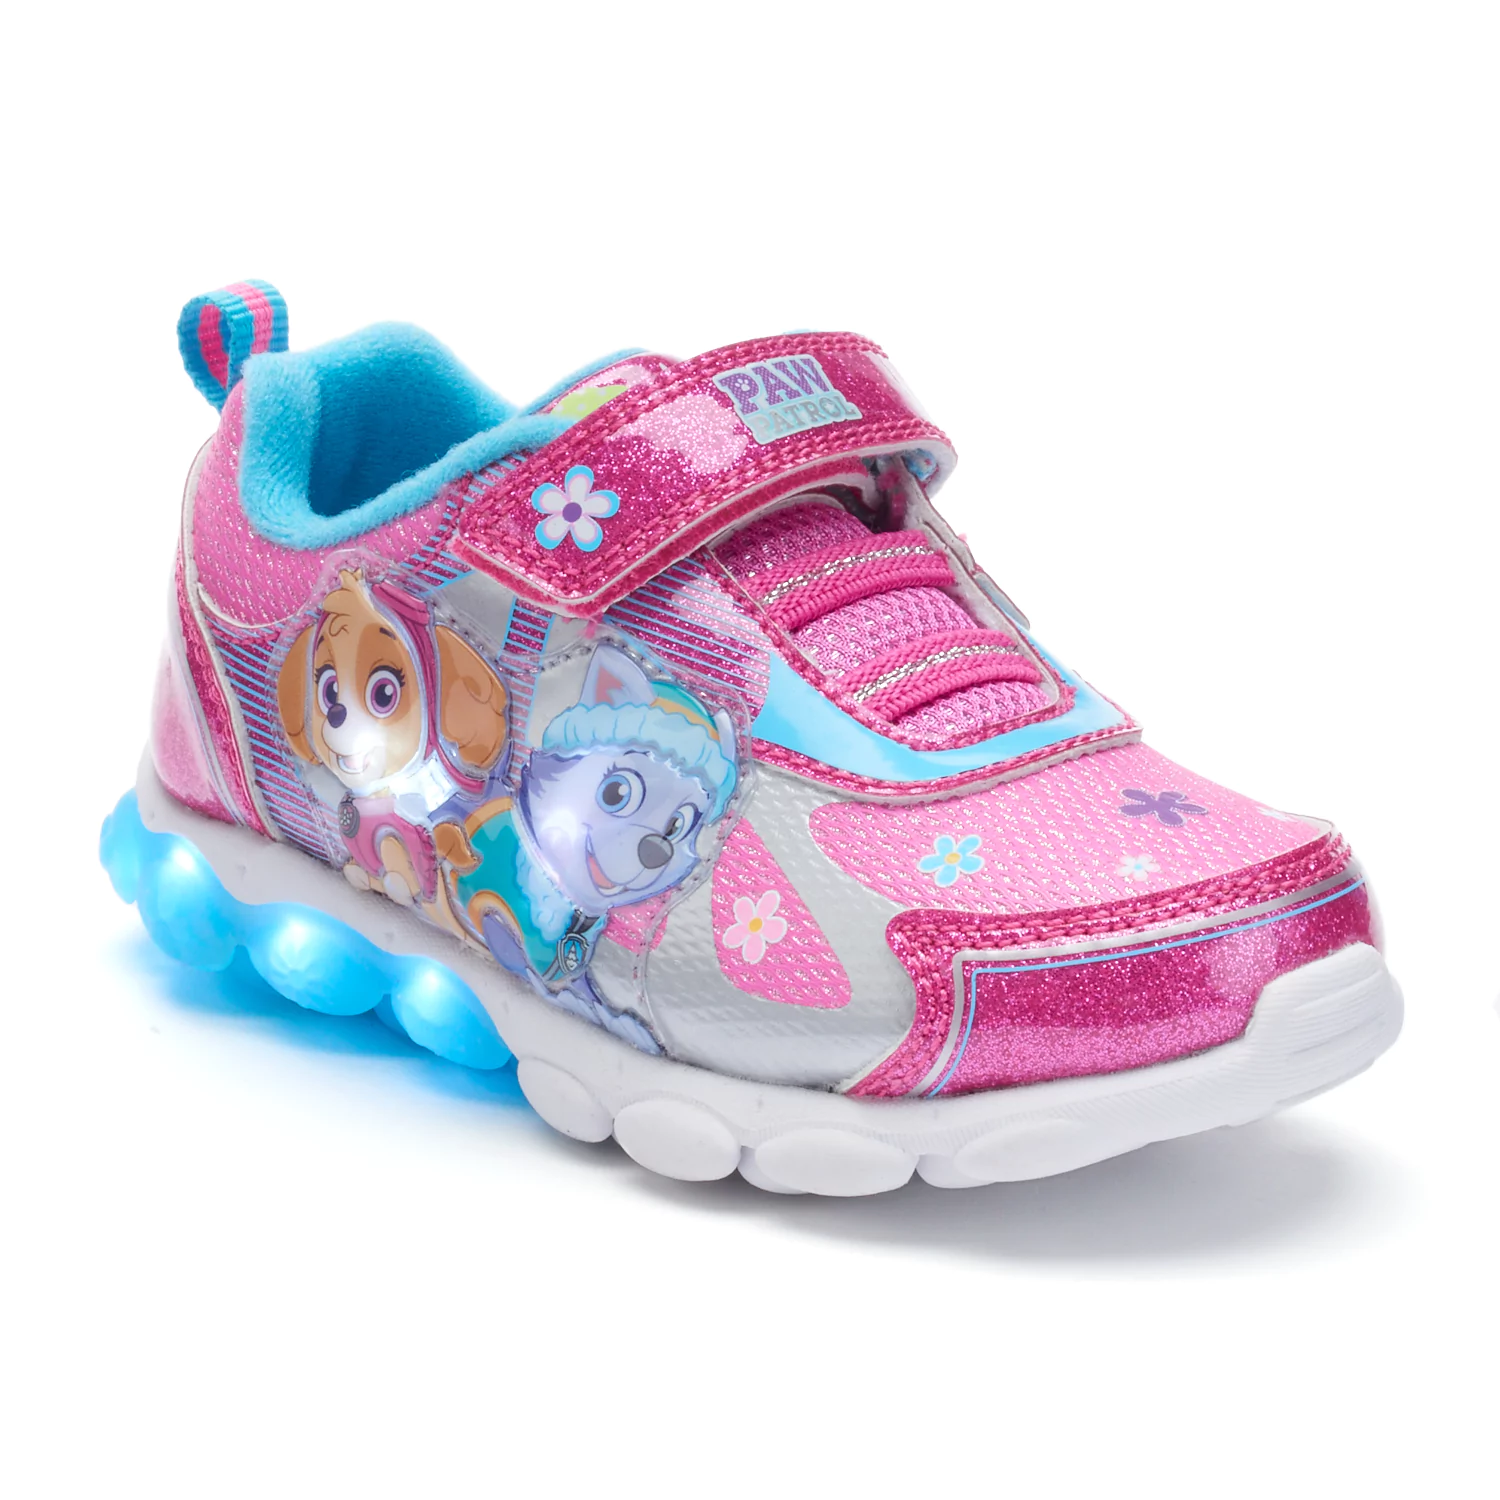 Girls Toddler Child Paw Patrol Light Up Sneakers Size 7 8 9 10 or 11 Skye